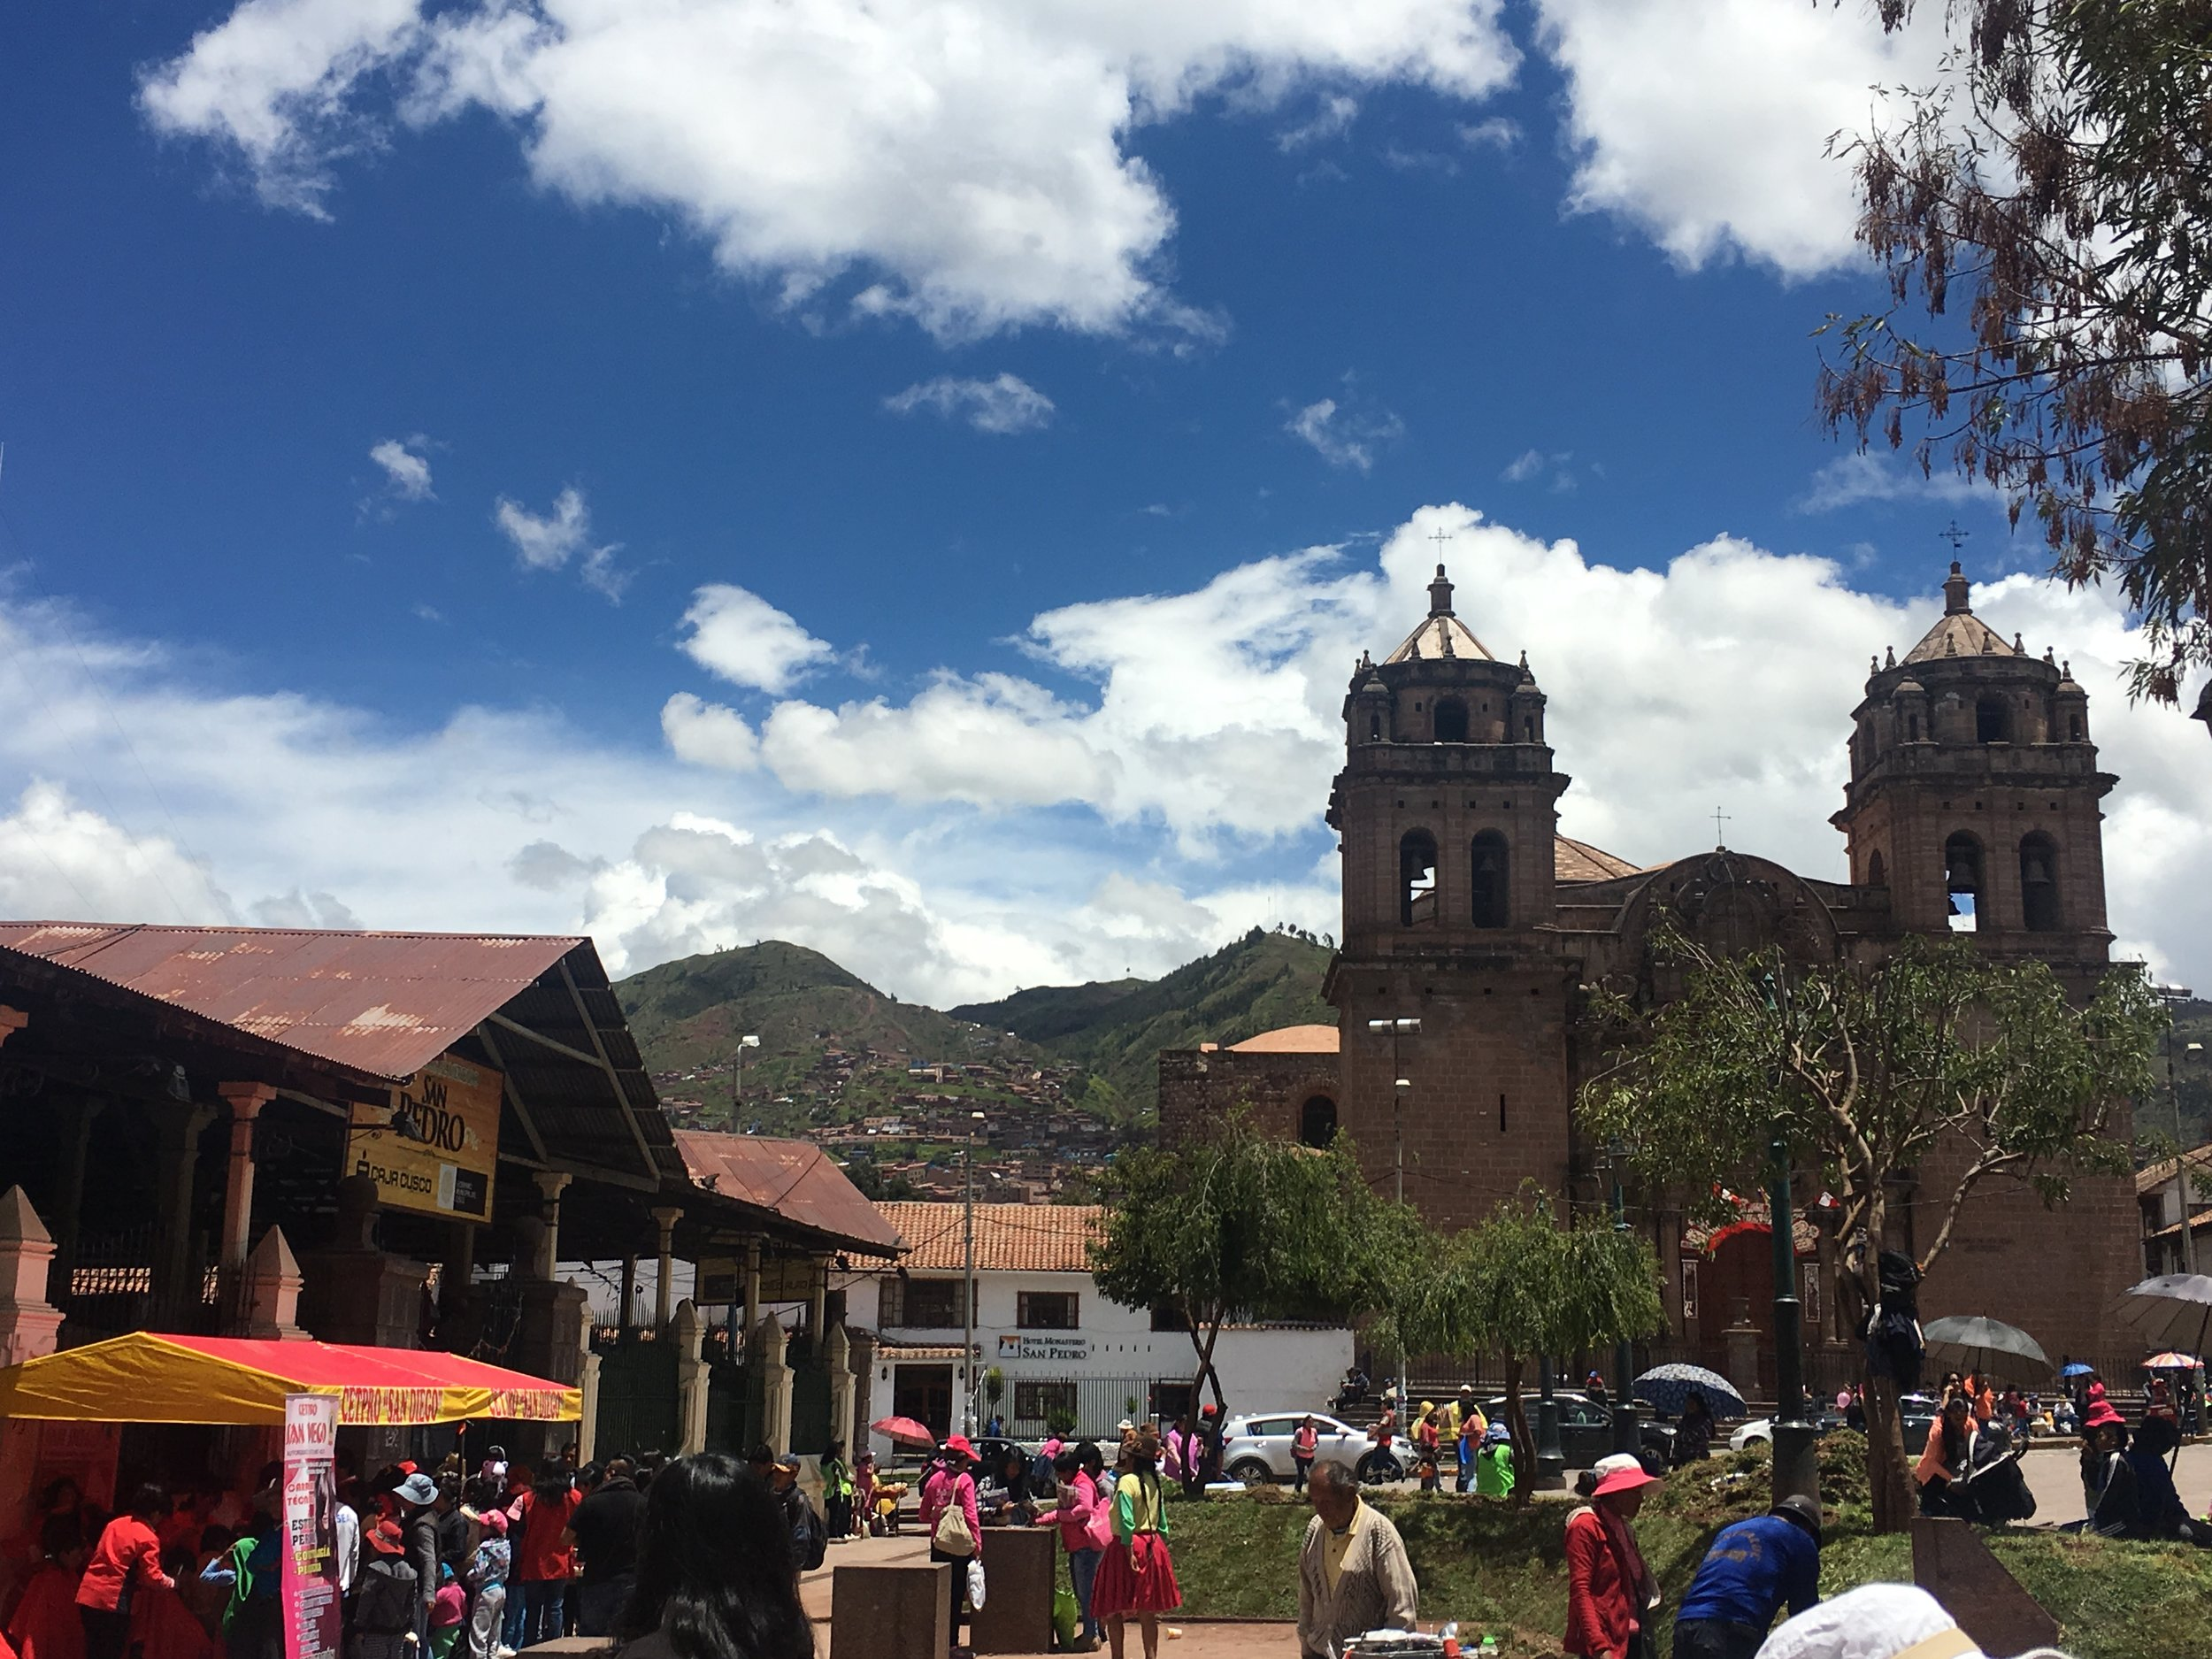 The city of Cusco with a view of San Pedro Central Market (left) and St. Peter's Church (right).